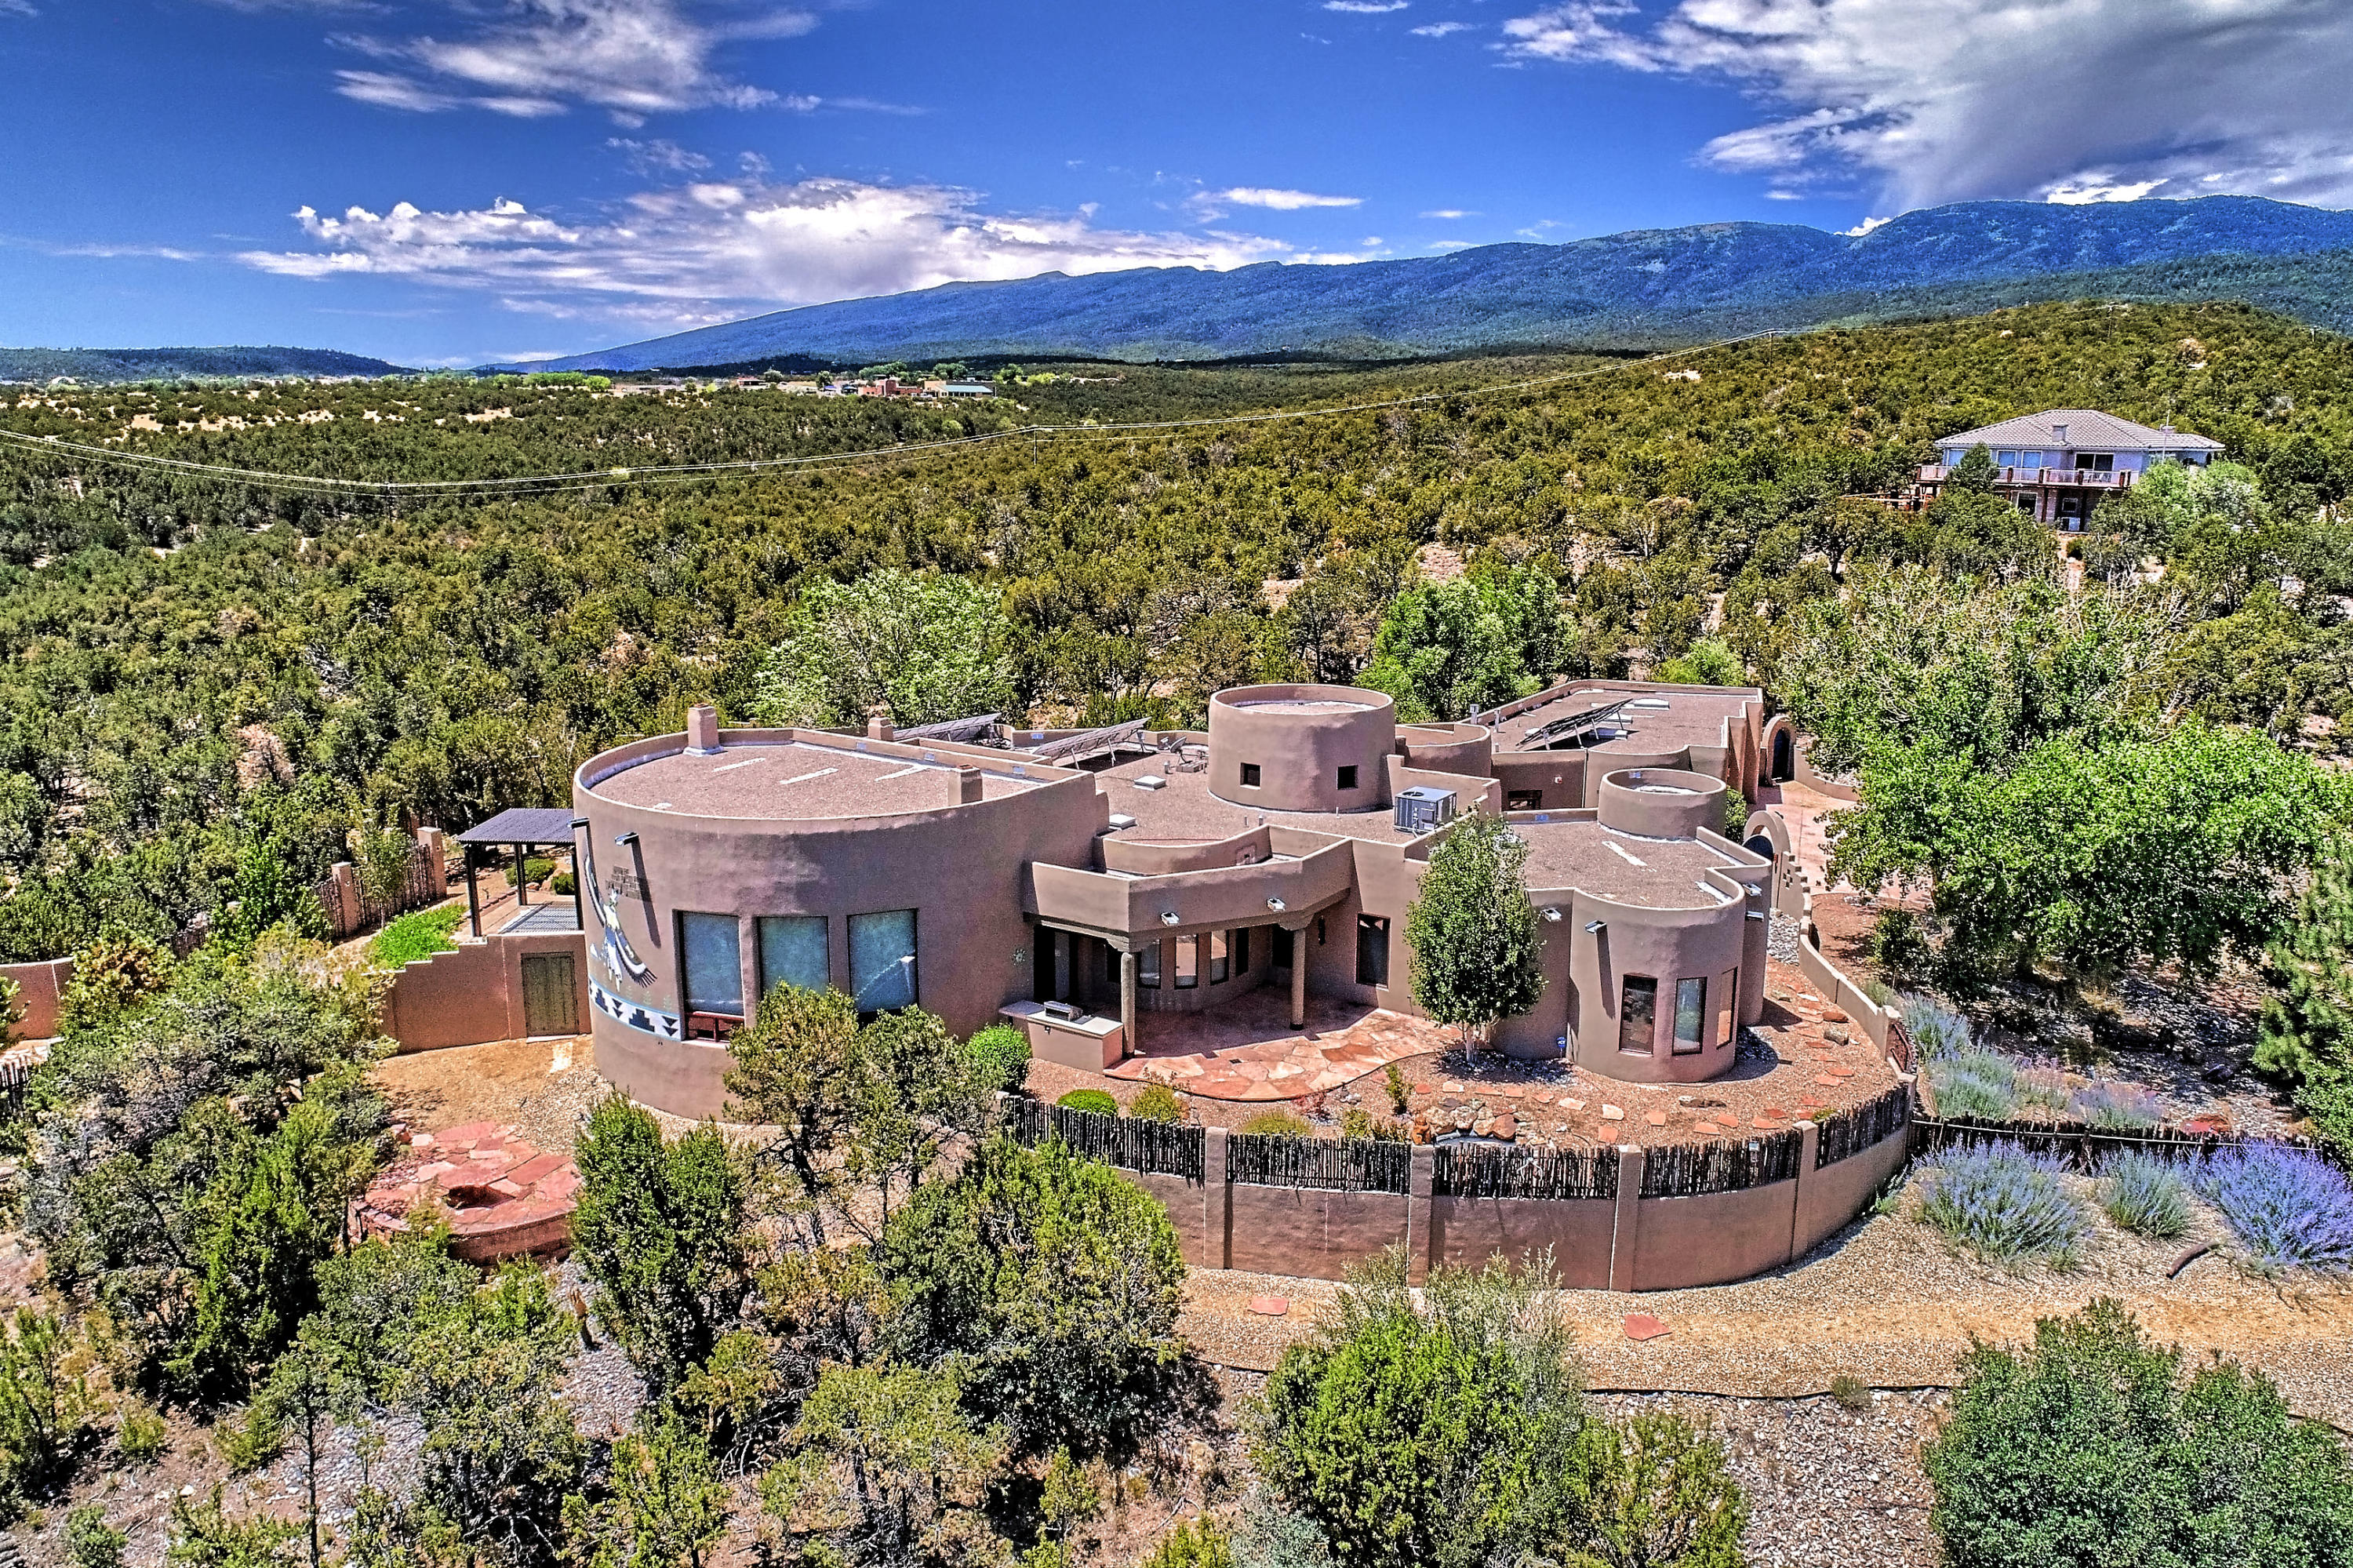 Stunning Southwest Pueblo home in beautiful Paa-ko. Nestled in the trees and situated on 3 acres with amazing views of the Ortiz and Sangre de Critso mountains! Attention to detail abounds in this 4 bedroom, 5 bath, 4514 Sq Ft home, featuring; 2 living areas, formal dining, gourmet kitchen with breakfast nook, 3 Kiva fireplaces, nichos, adobe accents thru-out, security system, and a 4 car oversized garage with a 1 car detached garage that is perfect for workshop or studio. Several outdoor living spaces offer the perfect setting for entertaining or relaxing on one of the many patios and sitting areas, with amazing views and a beautiful water feature! Must see to truly appreciate this stunning home!